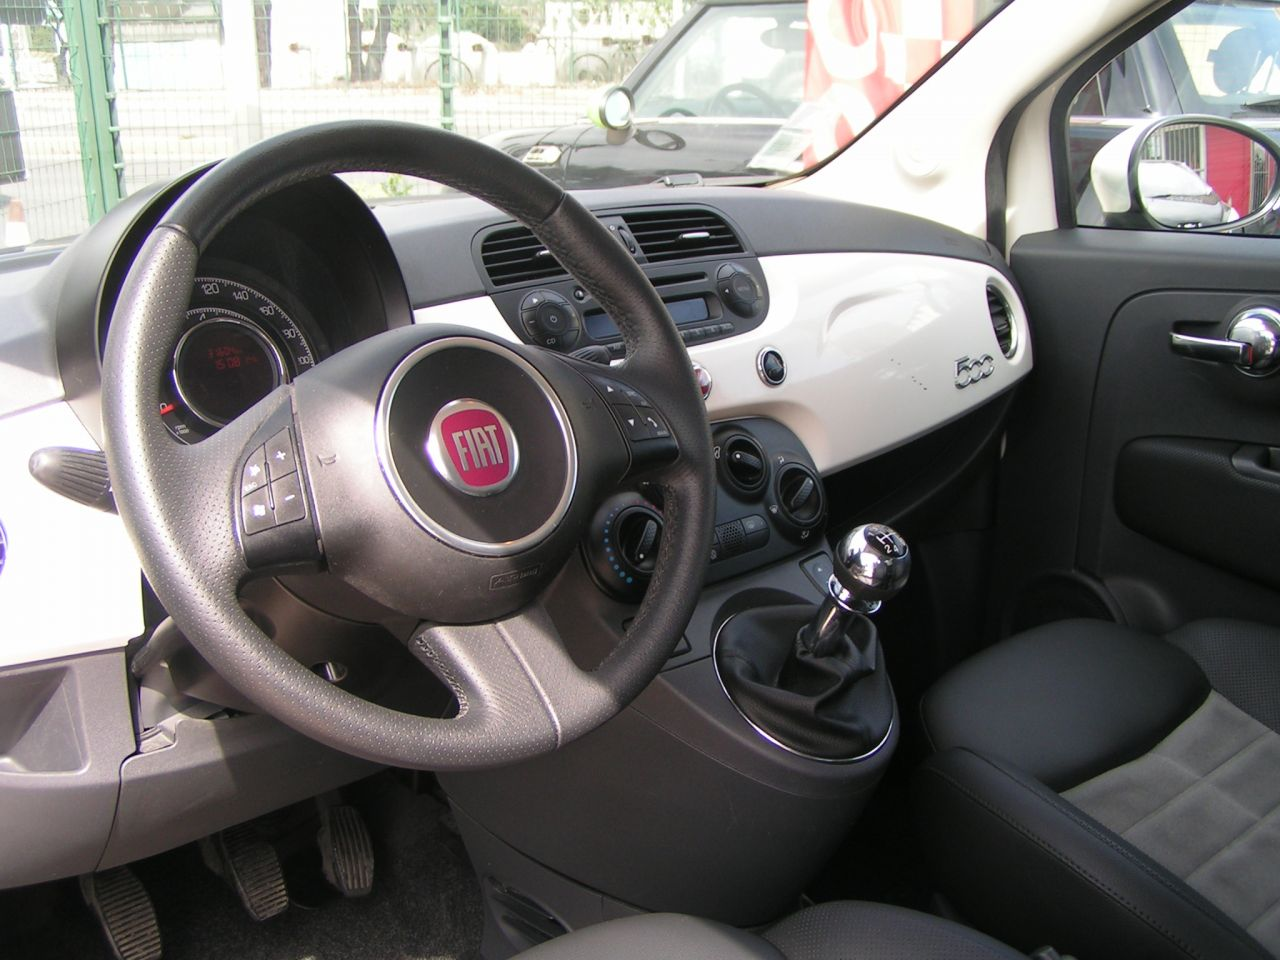 fiat 500 sport 1 2 avec 31500 km gtie 3 mois reprise auto et vente avec garantie et occasion. Black Bedroom Furniture Sets. Home Design Ideas